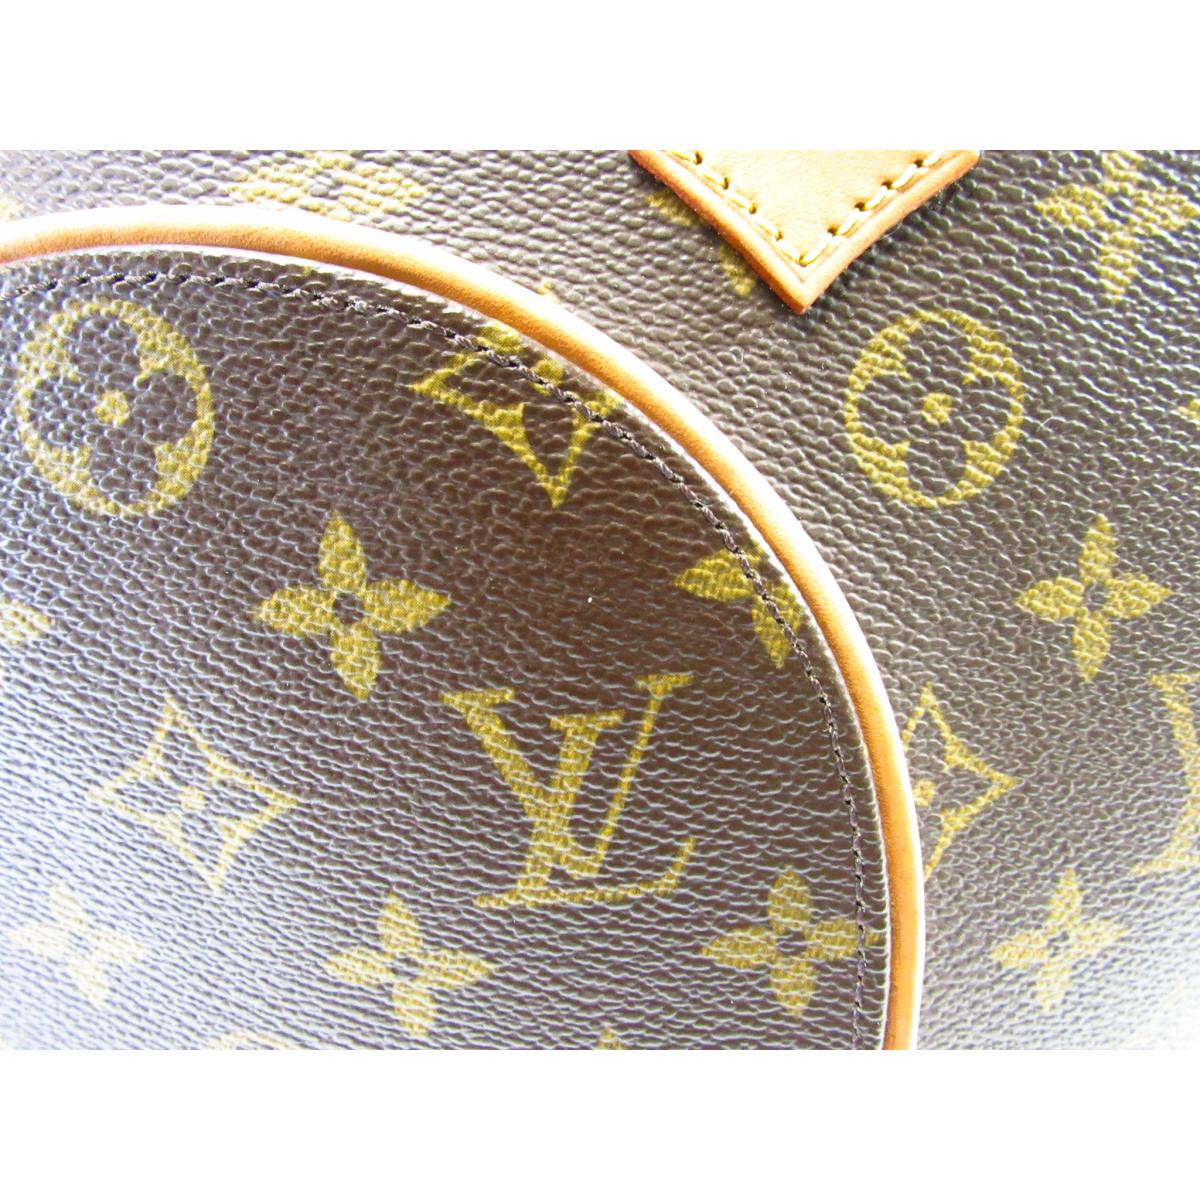 LOUIS VUITTON LOUIS VUITTON バッグ M51127 原花手提包 小貝殼包 Ellipse PM M51127